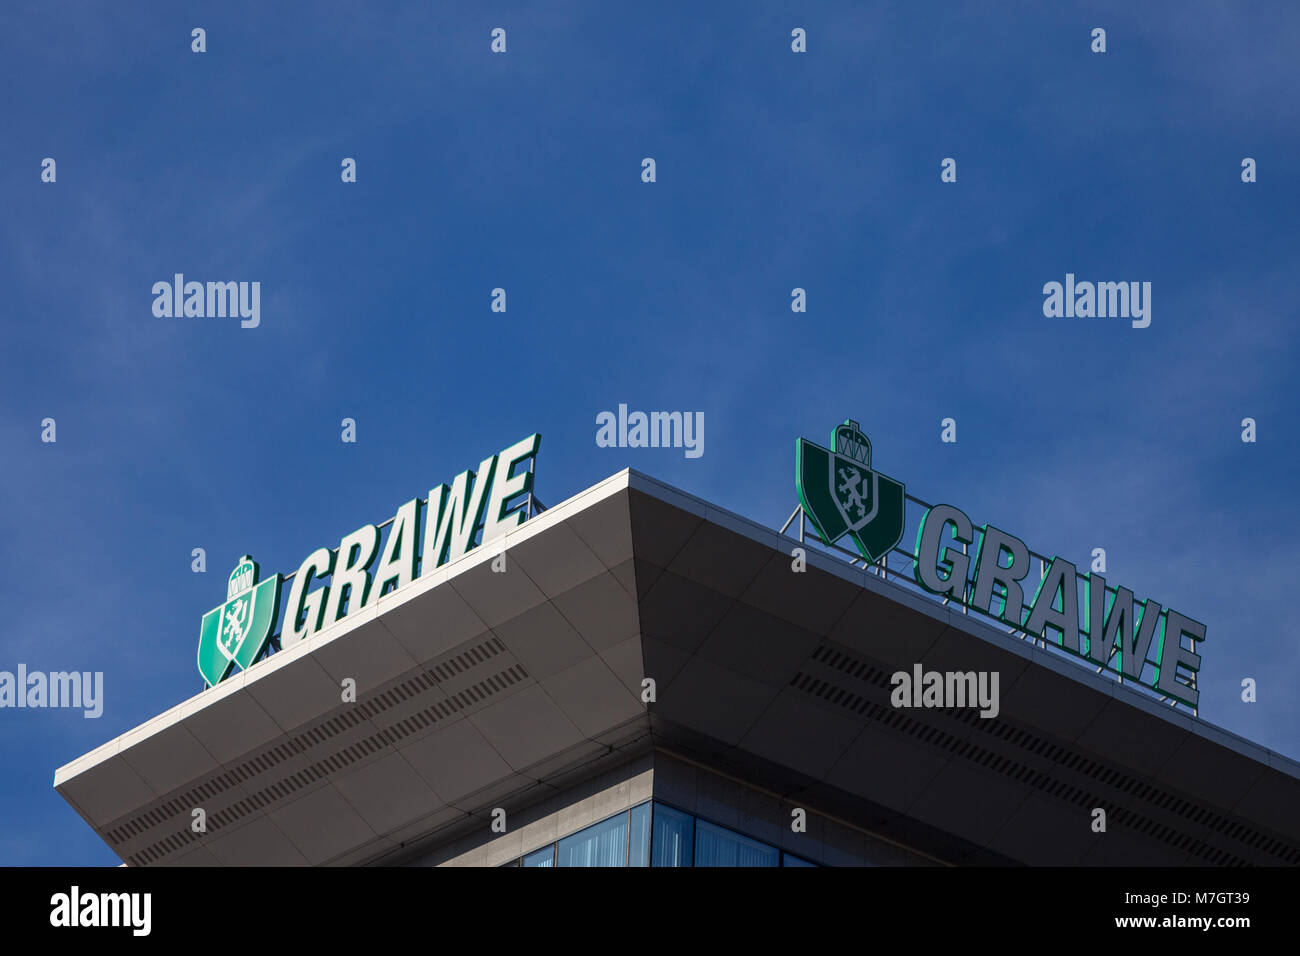 BELGRADE, SERBIA - MARCH 9, 2018: Grawe logo on their main office for Serbia. Grawe, or Grazer Wechselseitige  is - Stock Image